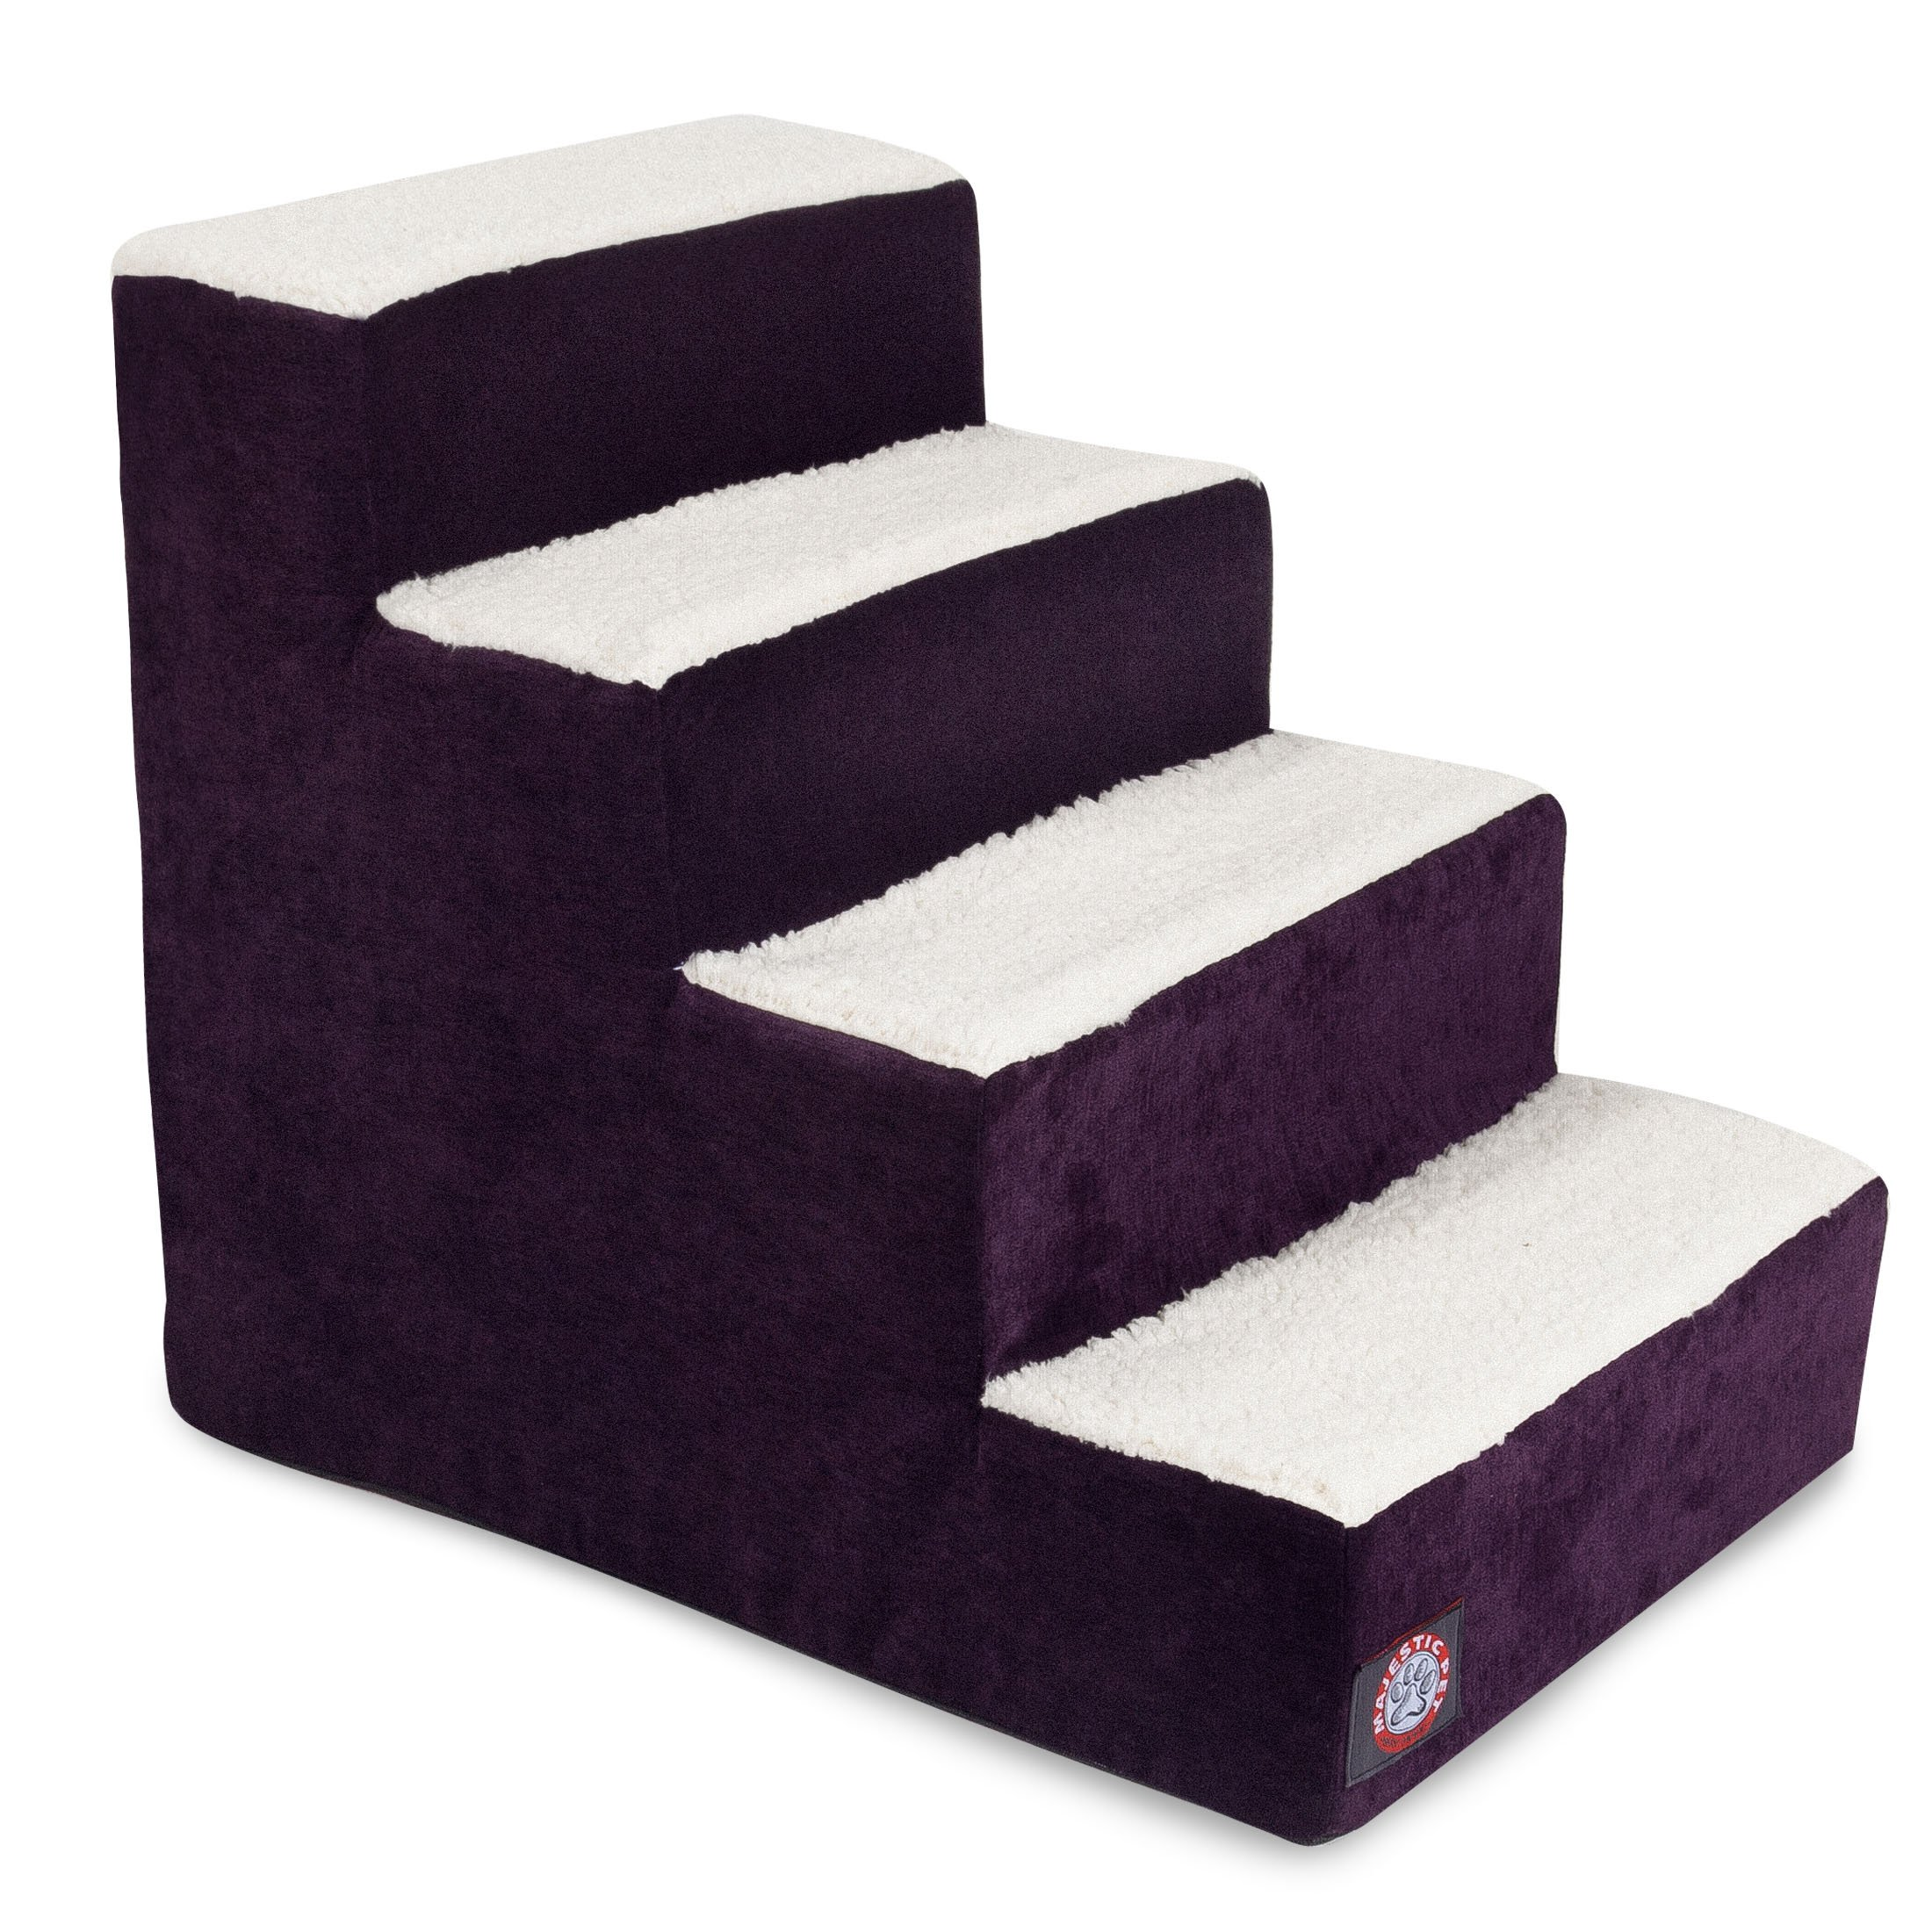 4 Step Portable Pet Stairs By Majestic Pet Products Villa Aubergine Steps for Cats and Dogs Purple